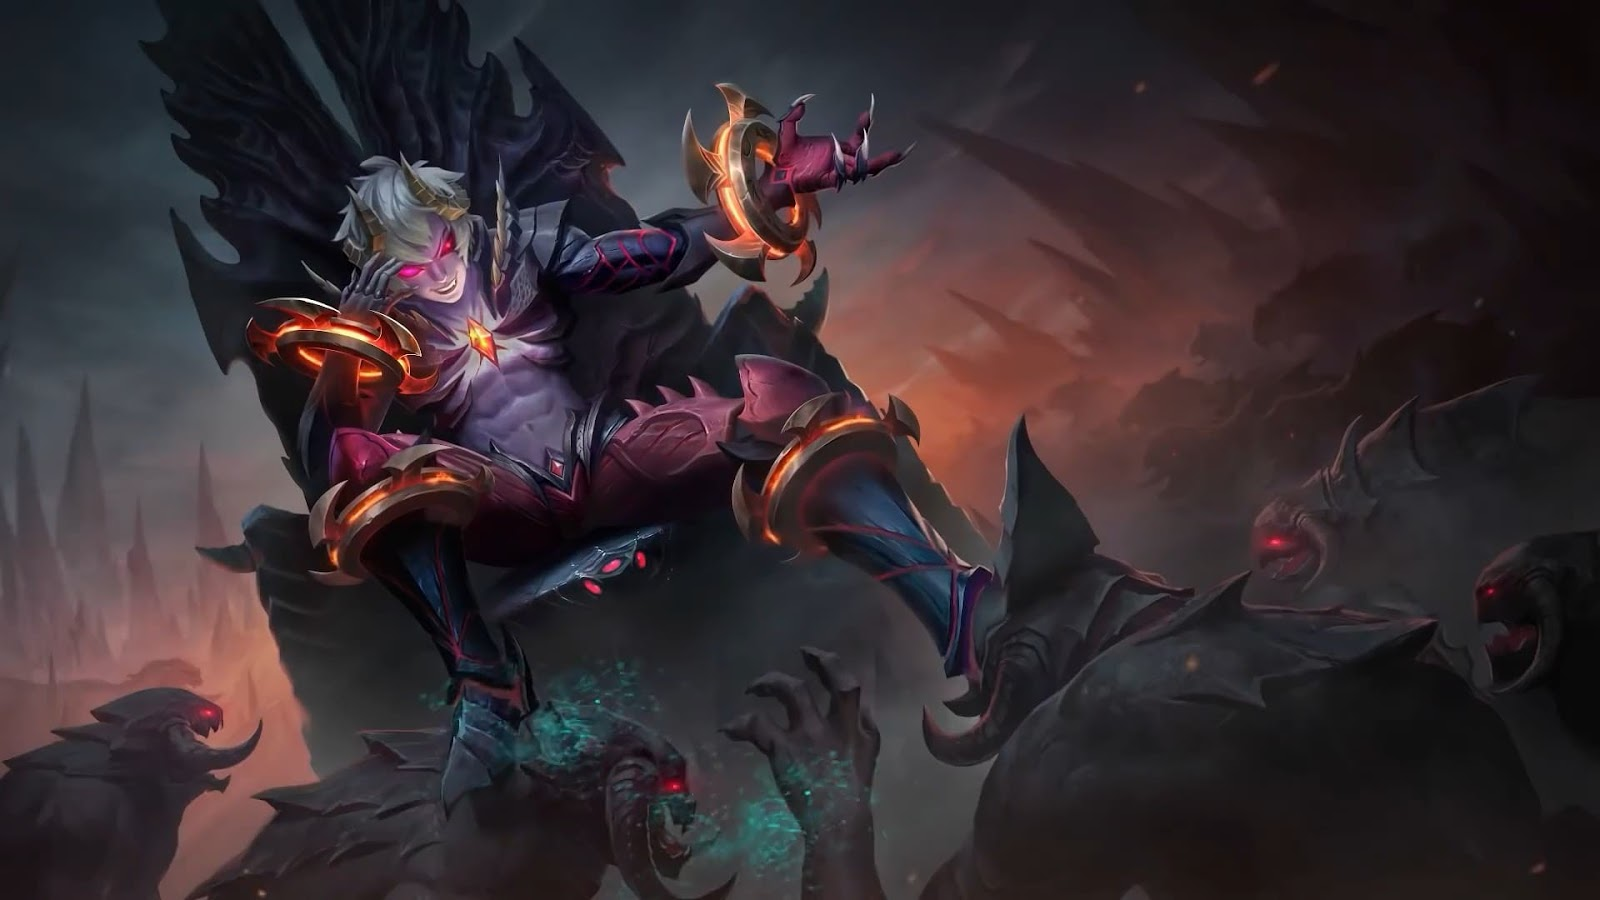 Wallpaper Dyrroth Prince of the Abyss Skin Mobile Legends HD for PC